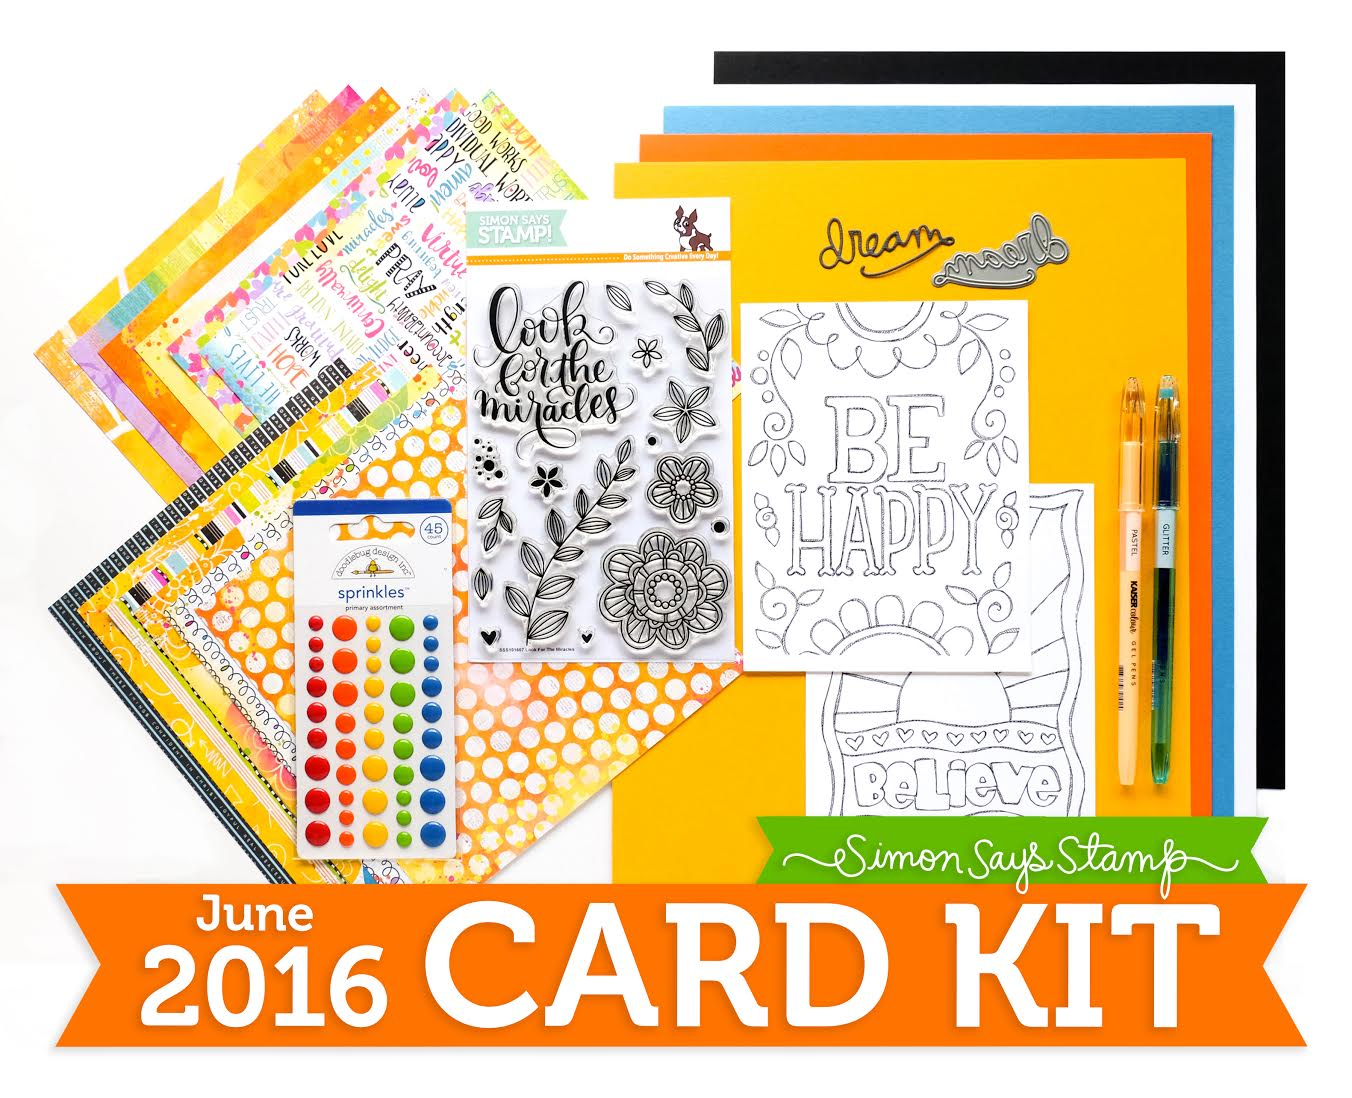 Simon Says Stamp June Card Kit